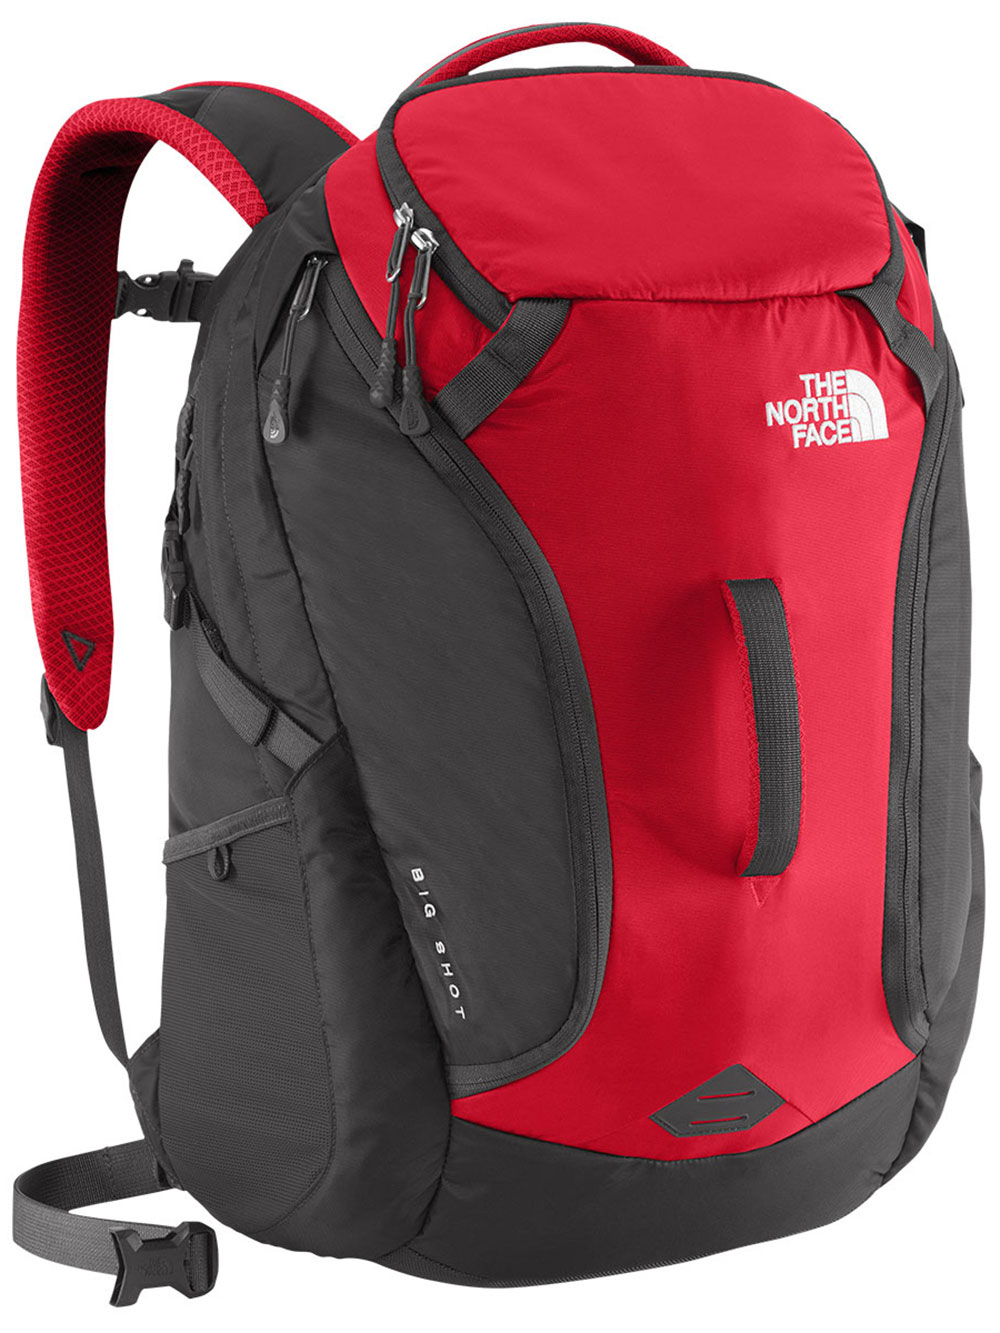 Image of The North Face Big Shot Backpack